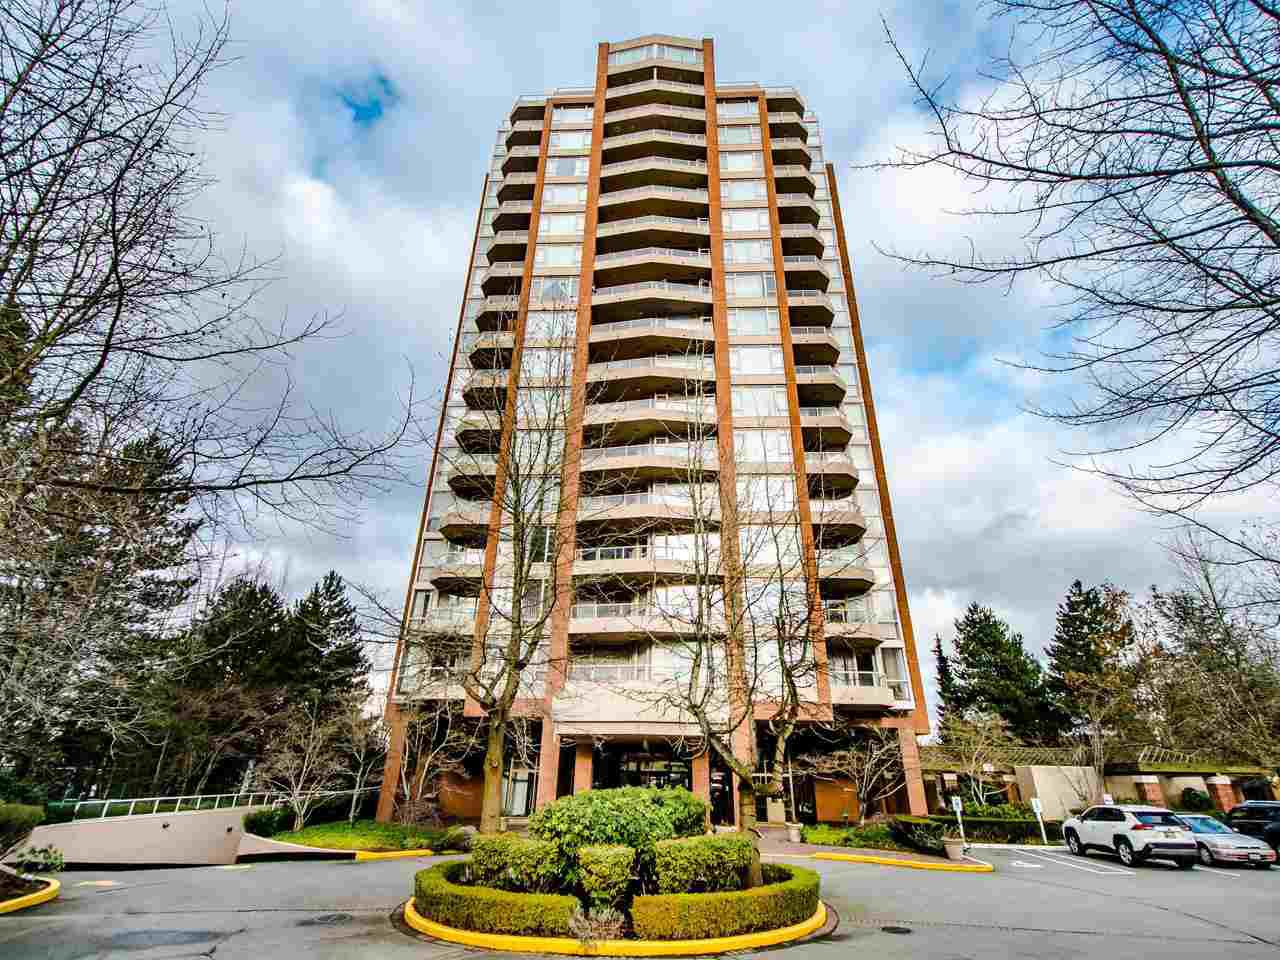 Main Photo: 404 4657 HAZEL Street in Burnaby: Forest Glen BS Condo for sale (Burnaby South)  : MLS®# R2432175